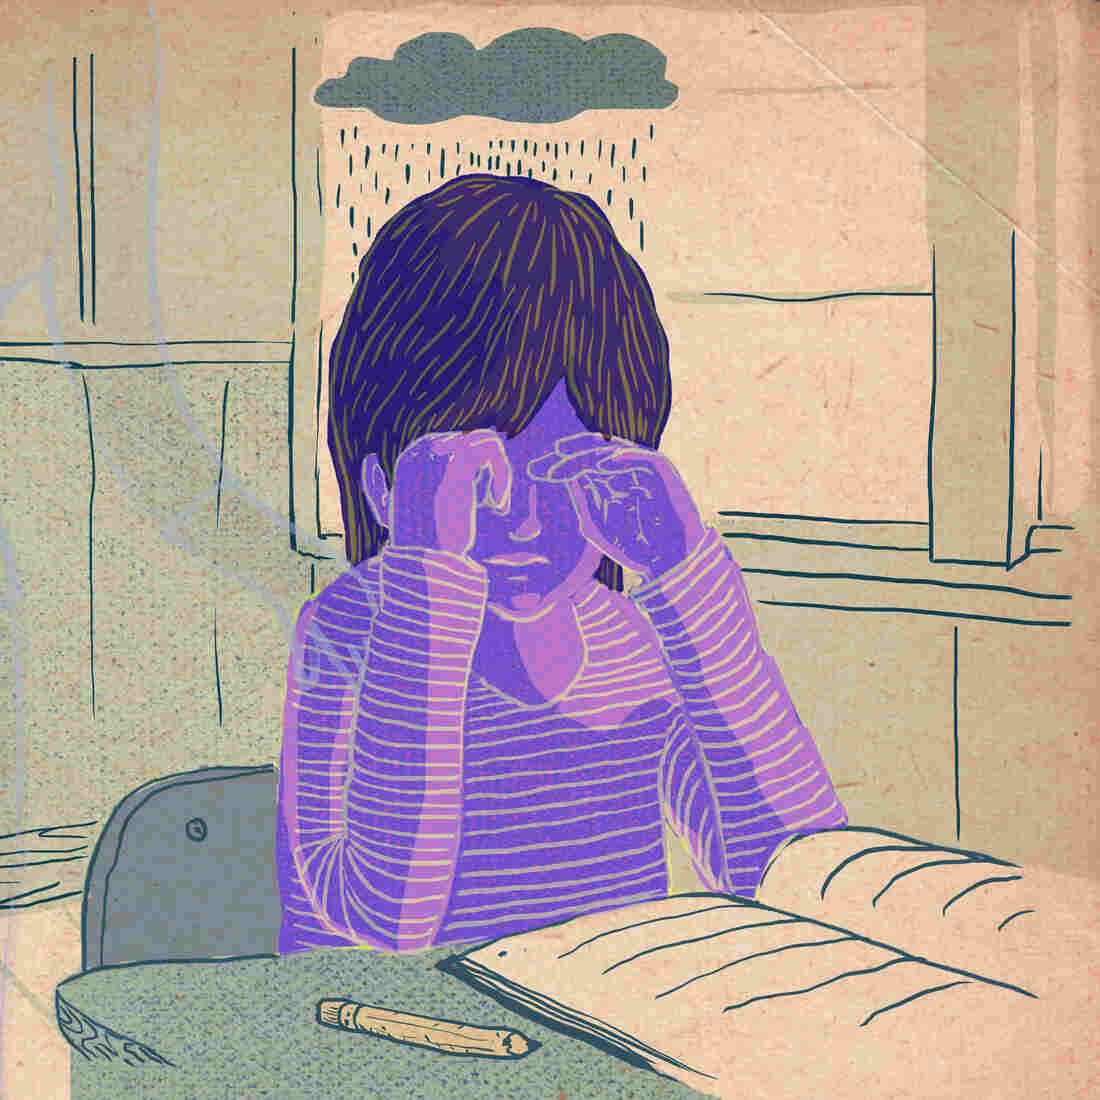 Grief In The Classroom: 'Saying Nothing Says A Lot'